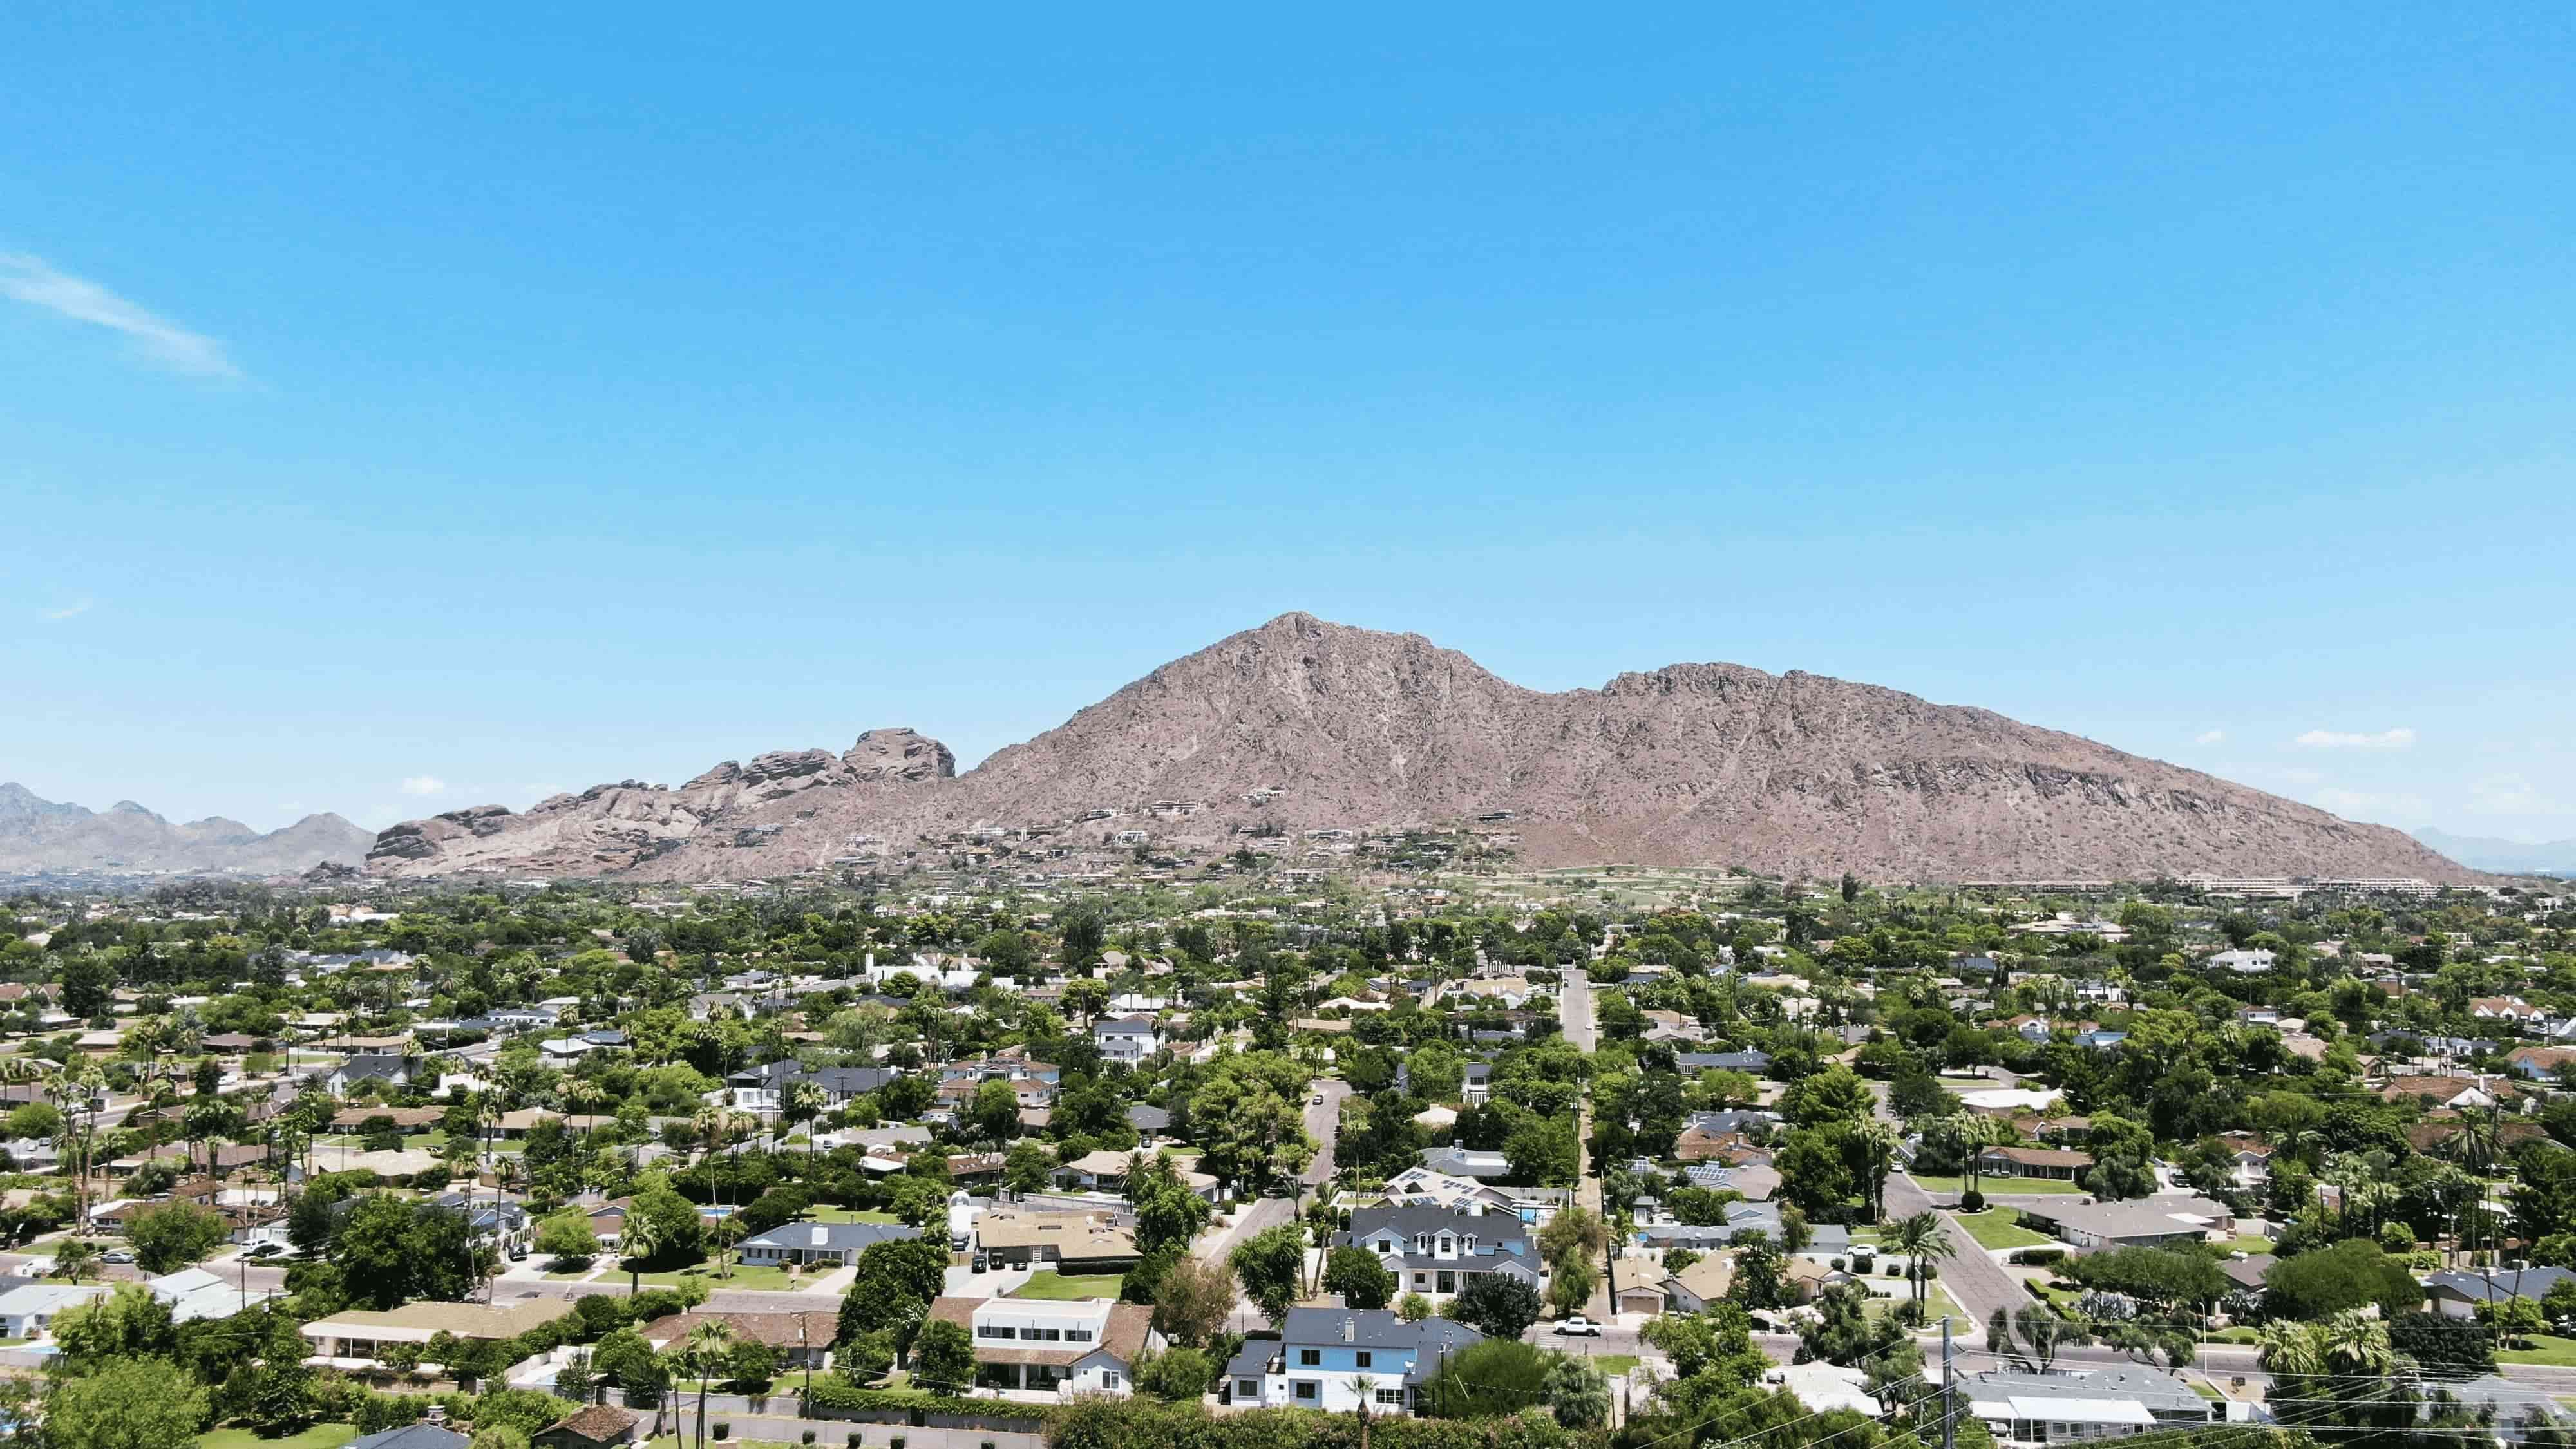 Residential real estate properties in Phoenix, AZ, great for investing!